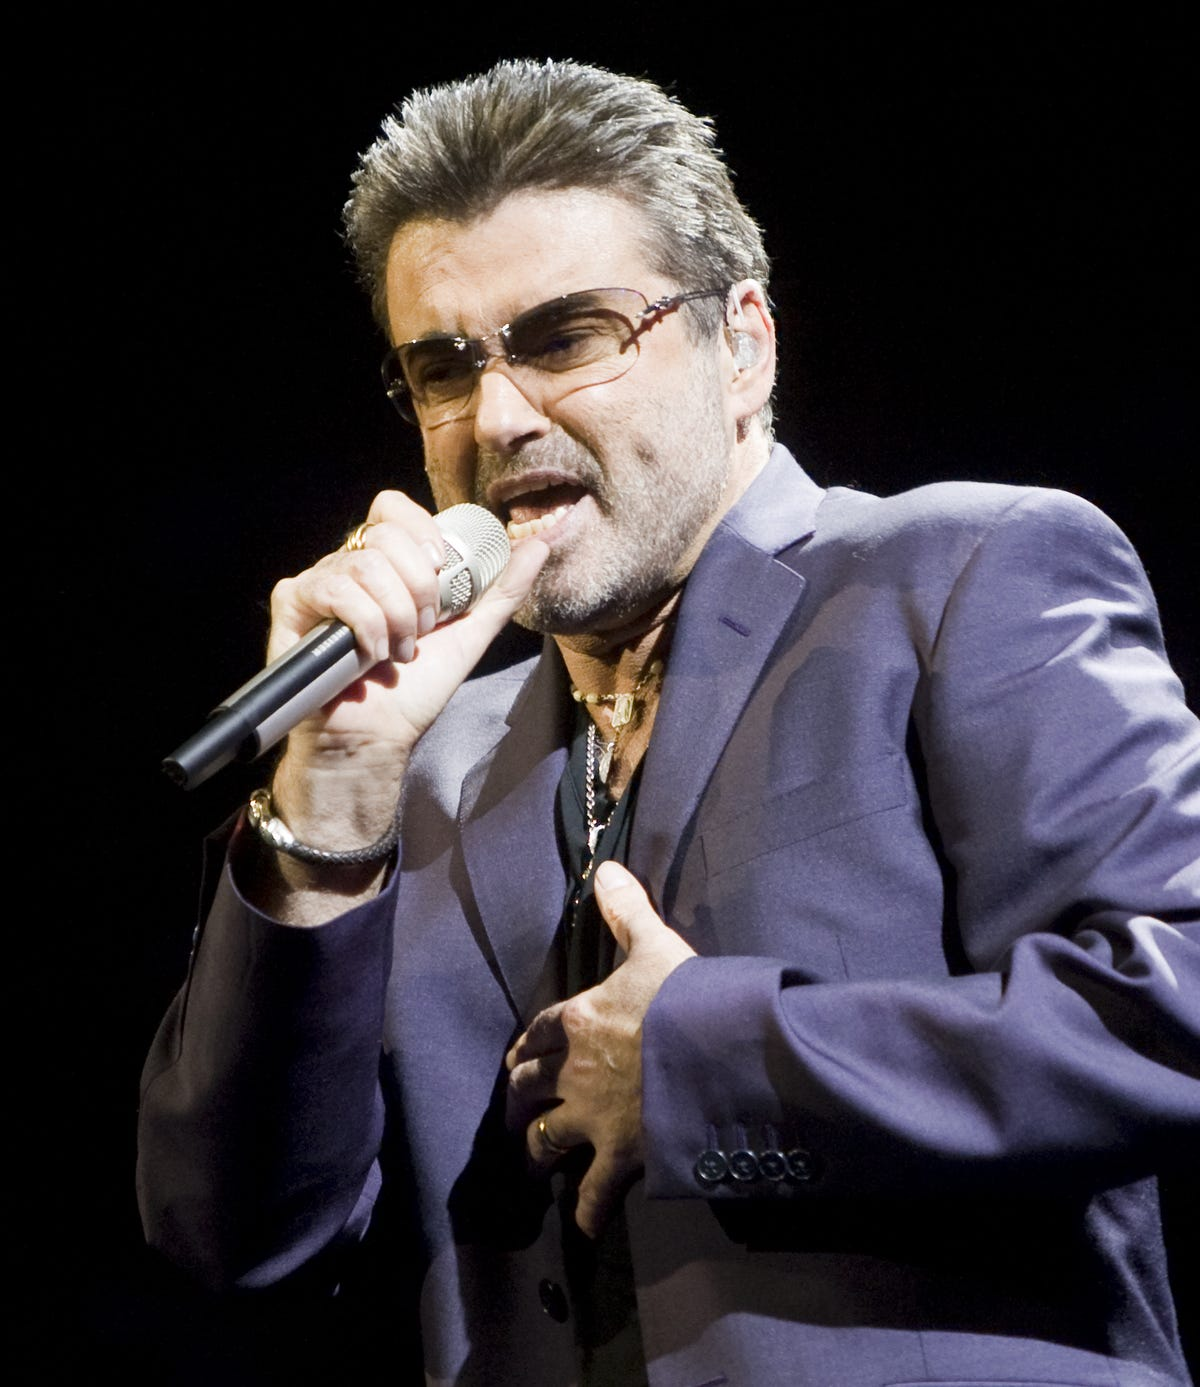 George Michael's 25 best songs: A playlist